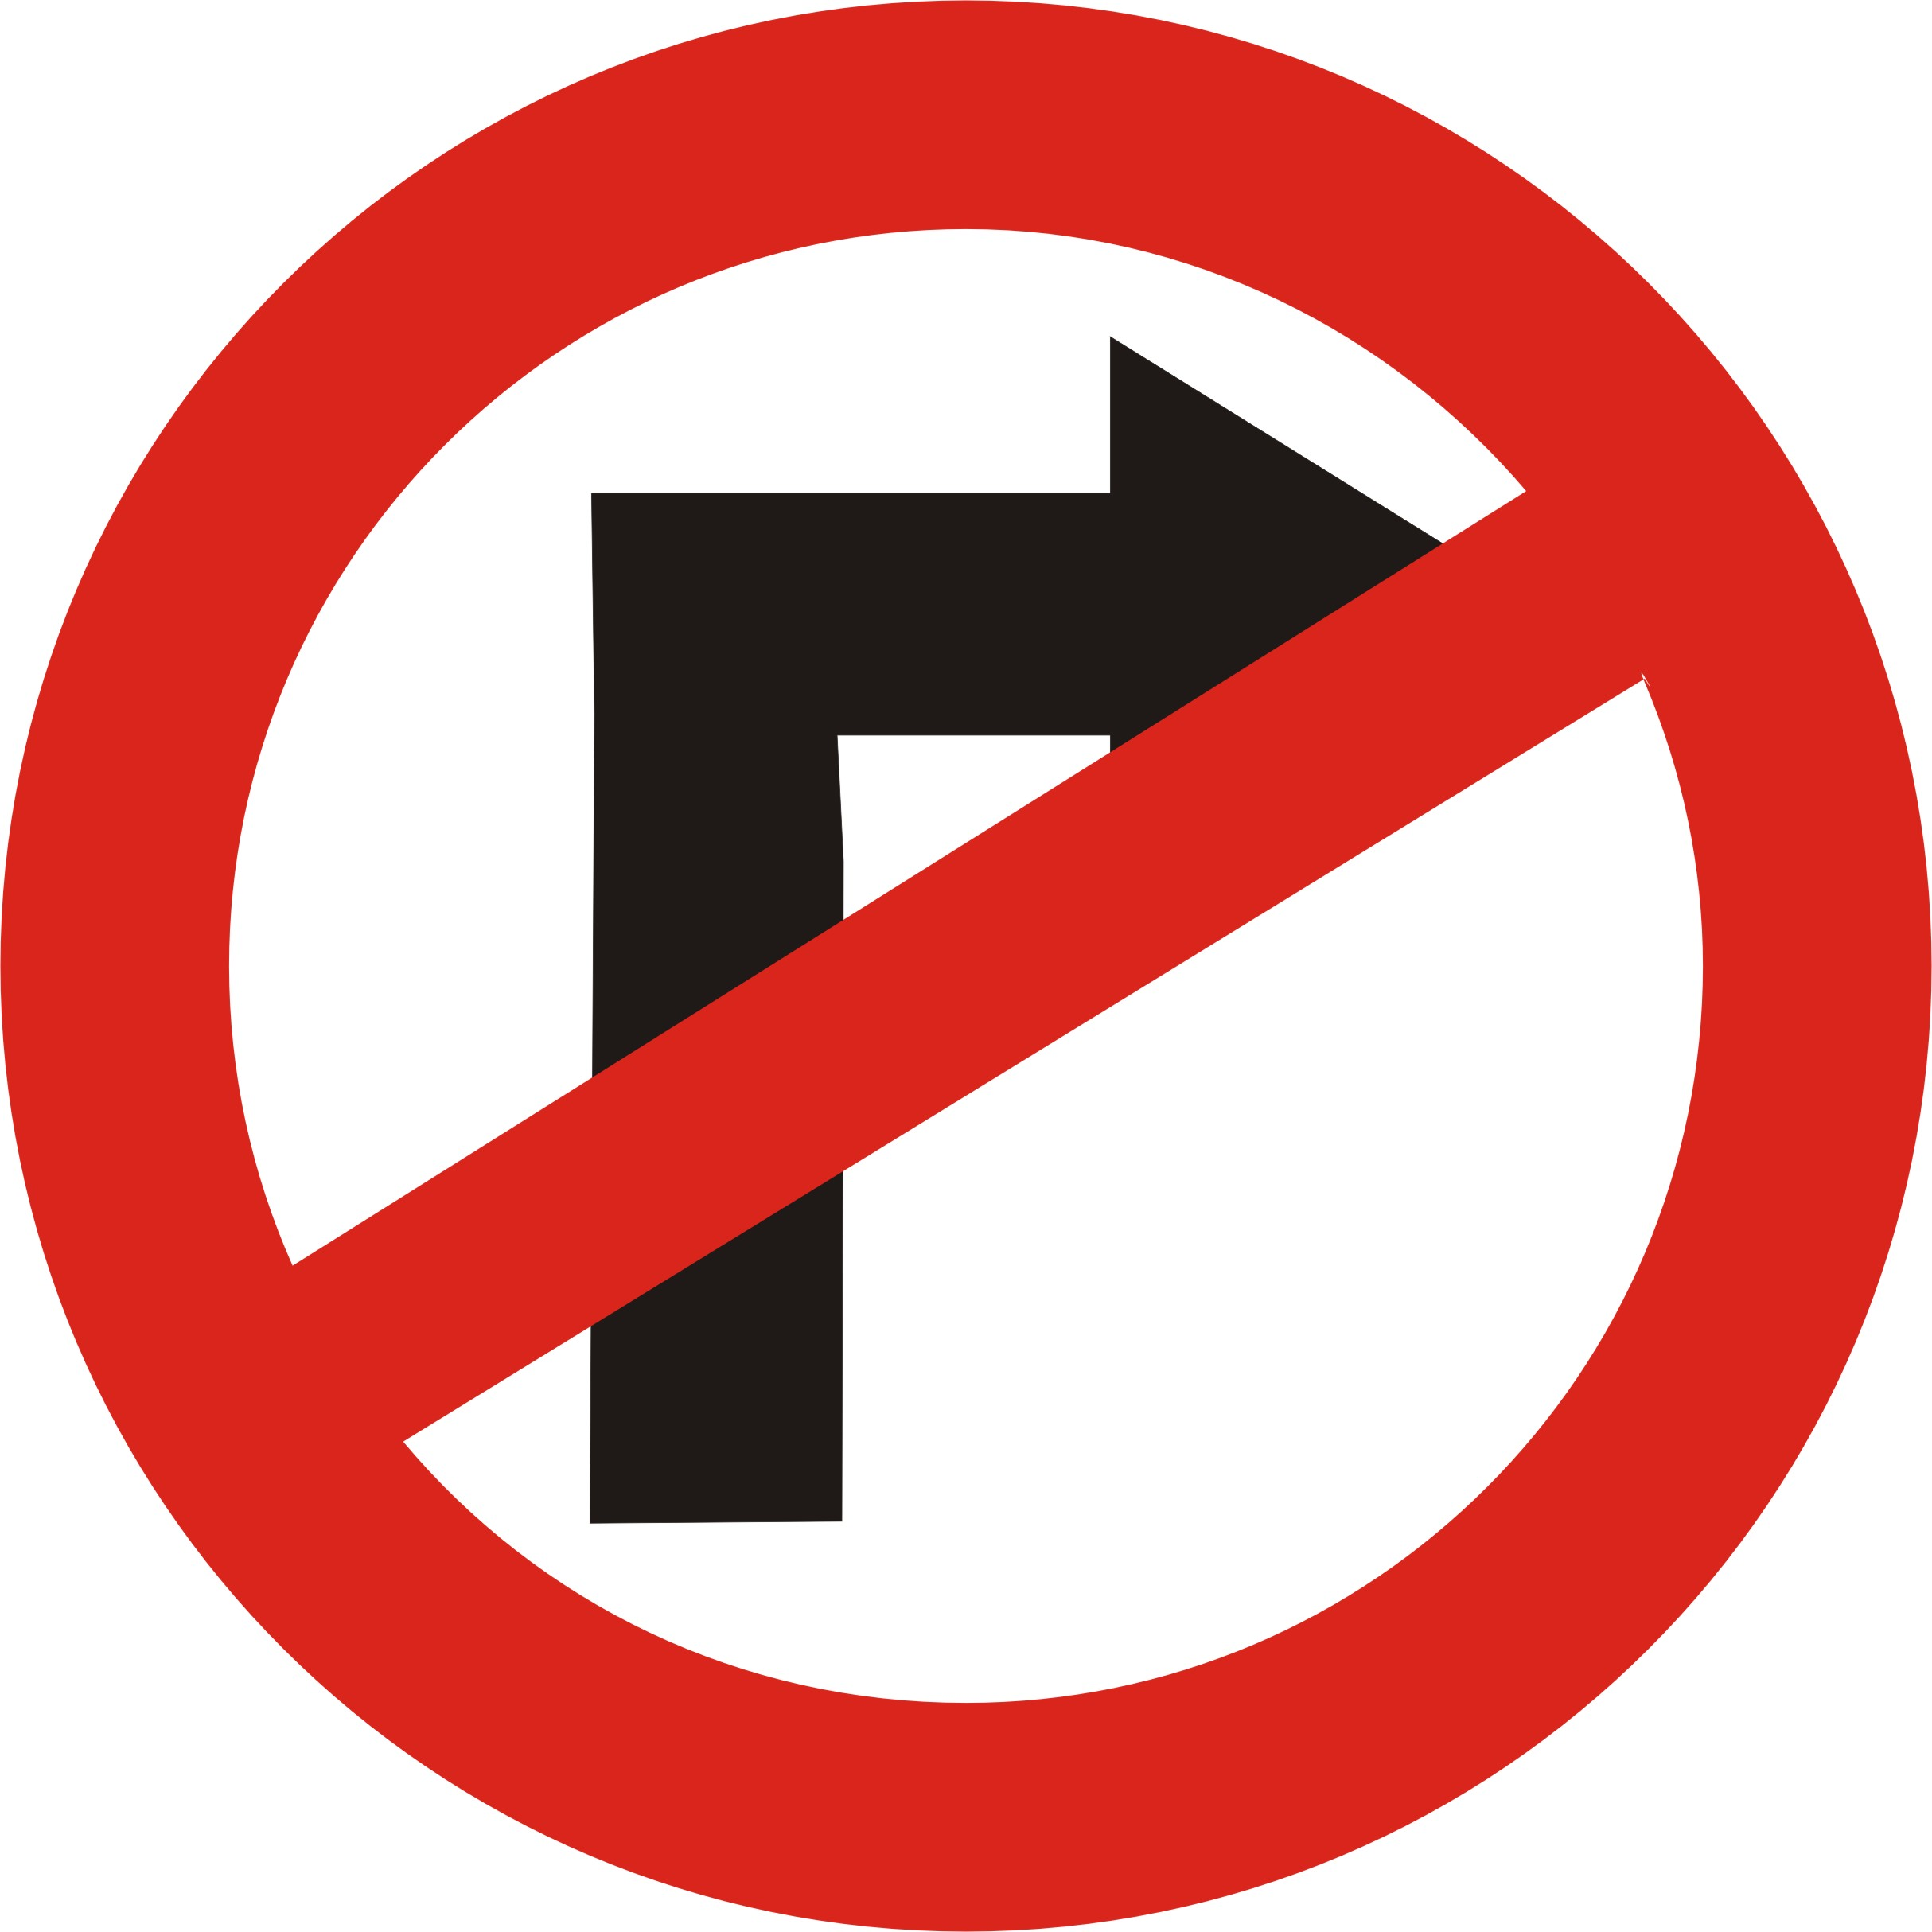 File:Road Sign No Right Turn.jpg  Wikimedia Commons